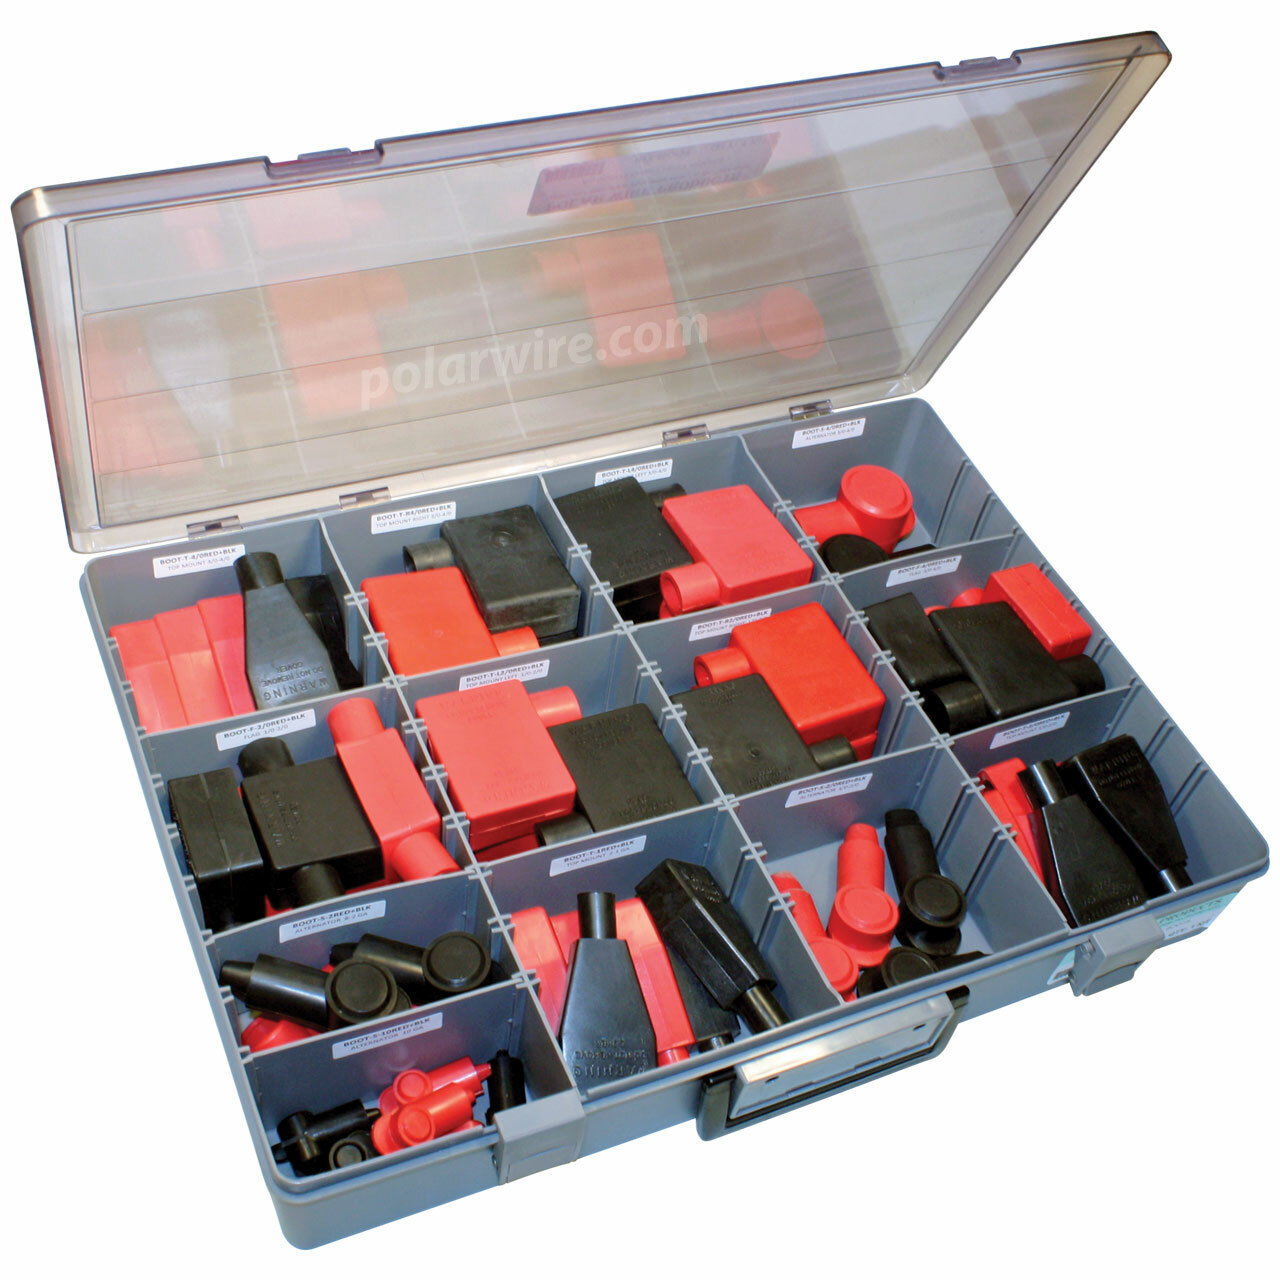 BATTERY BOOT KIT ASSORTED SIZES & STYLES